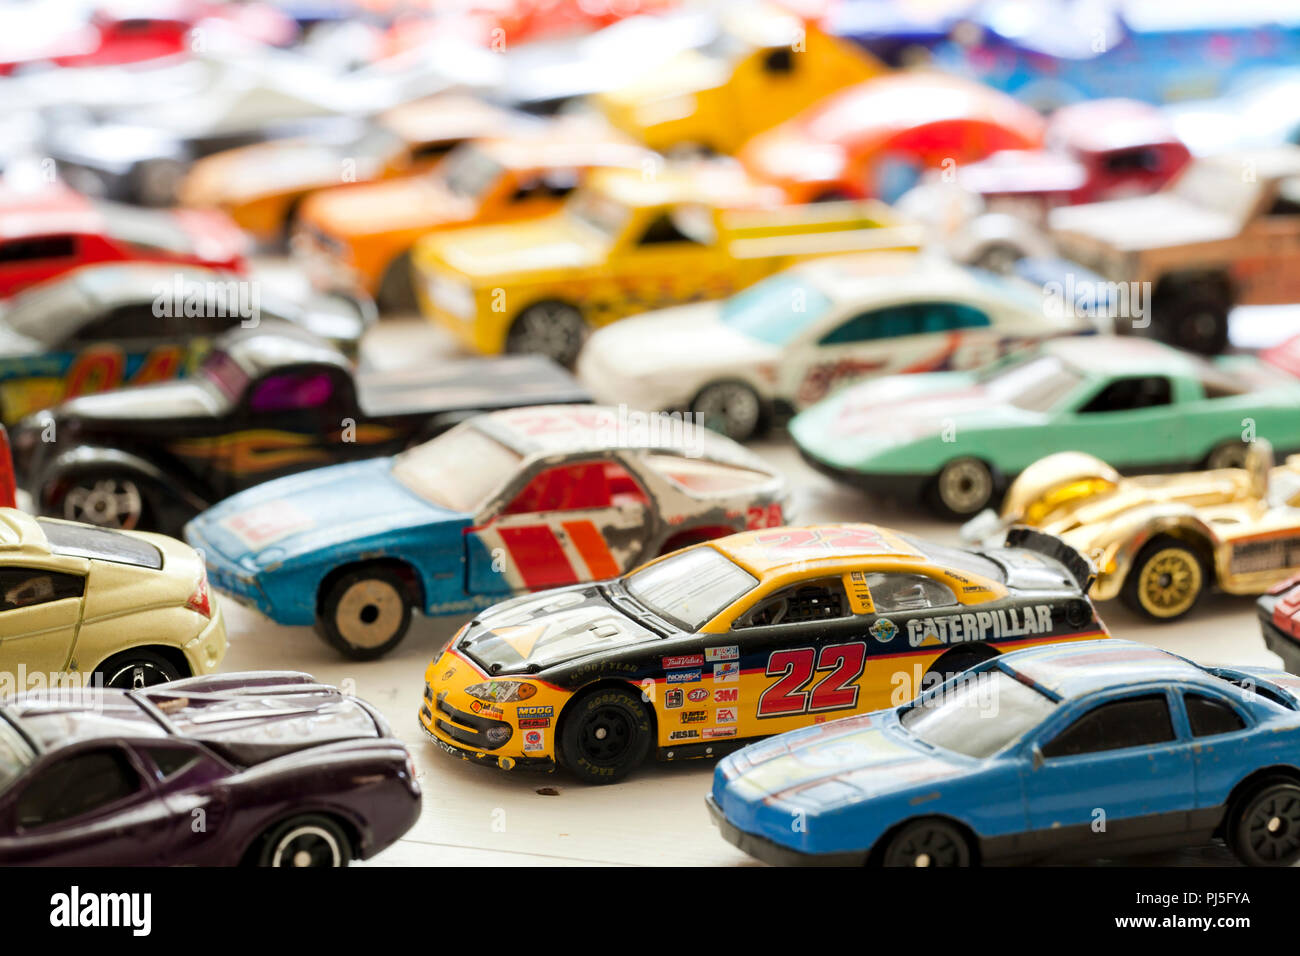 Vintage used Hot Wheels collection on table - USA - Stock Image